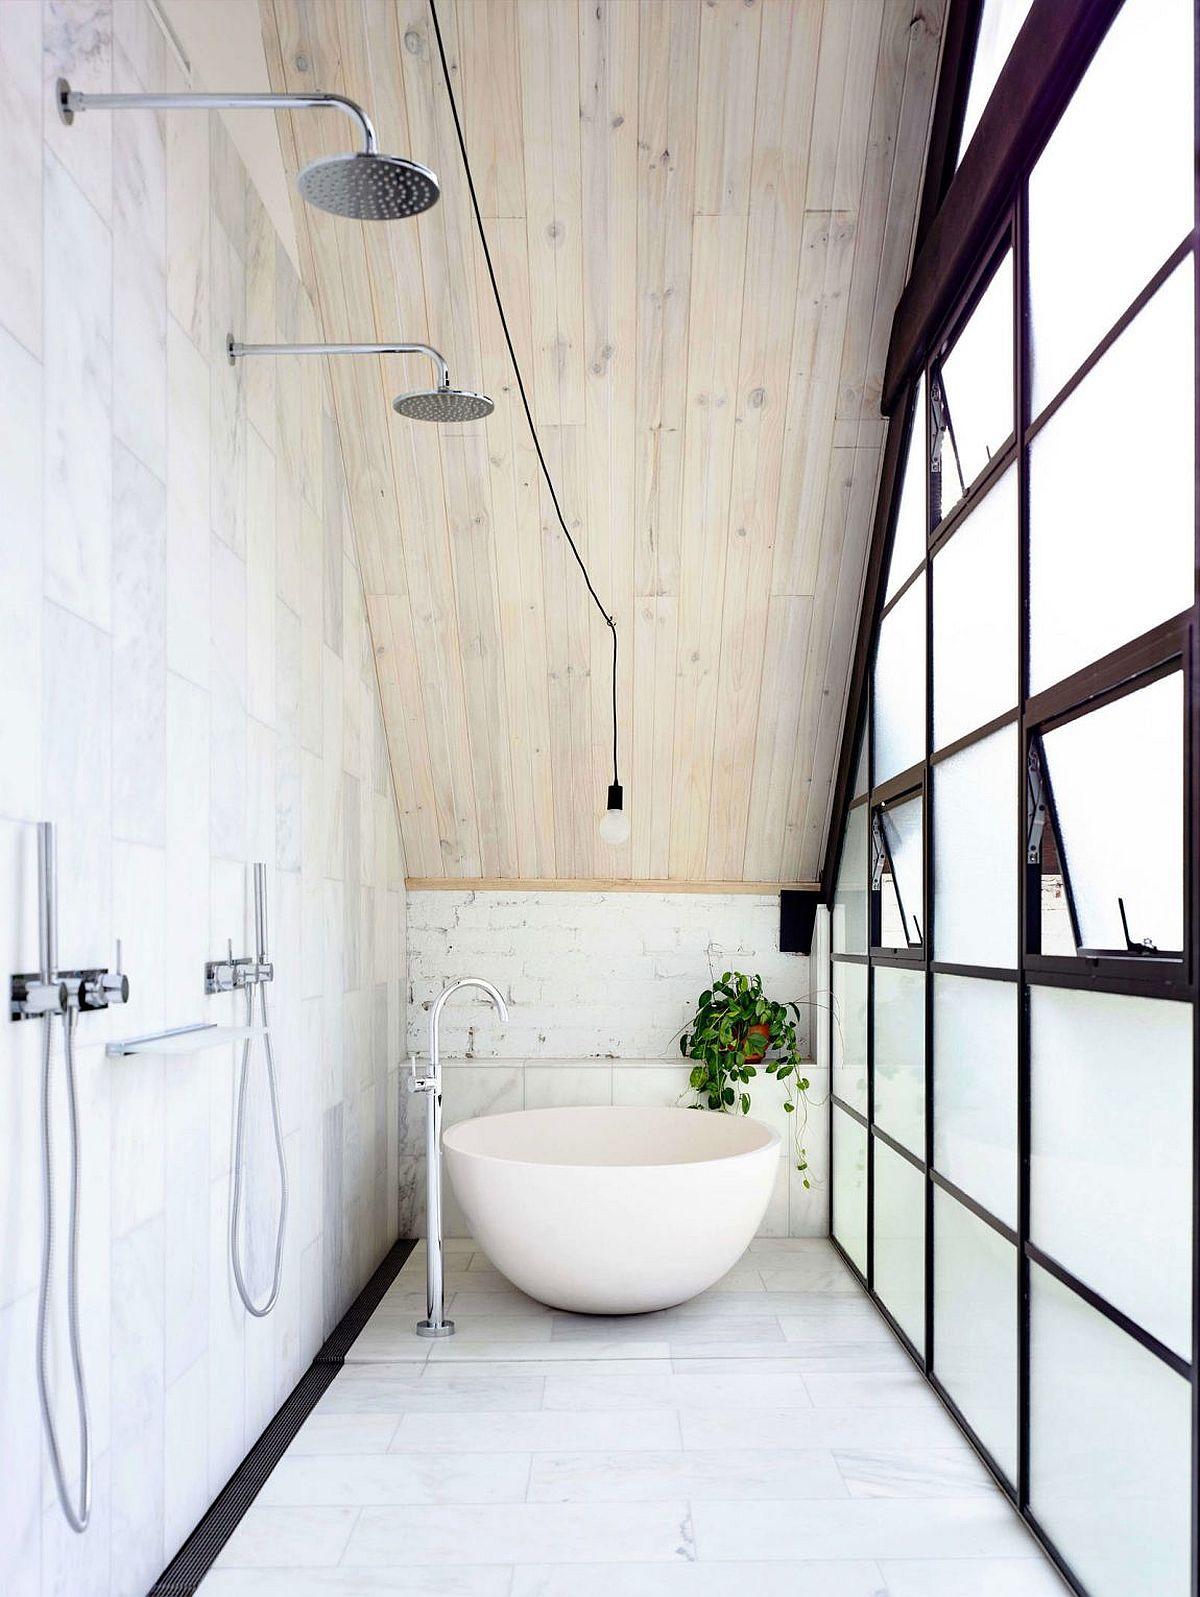 Narrow bathroom design with industrial style in white